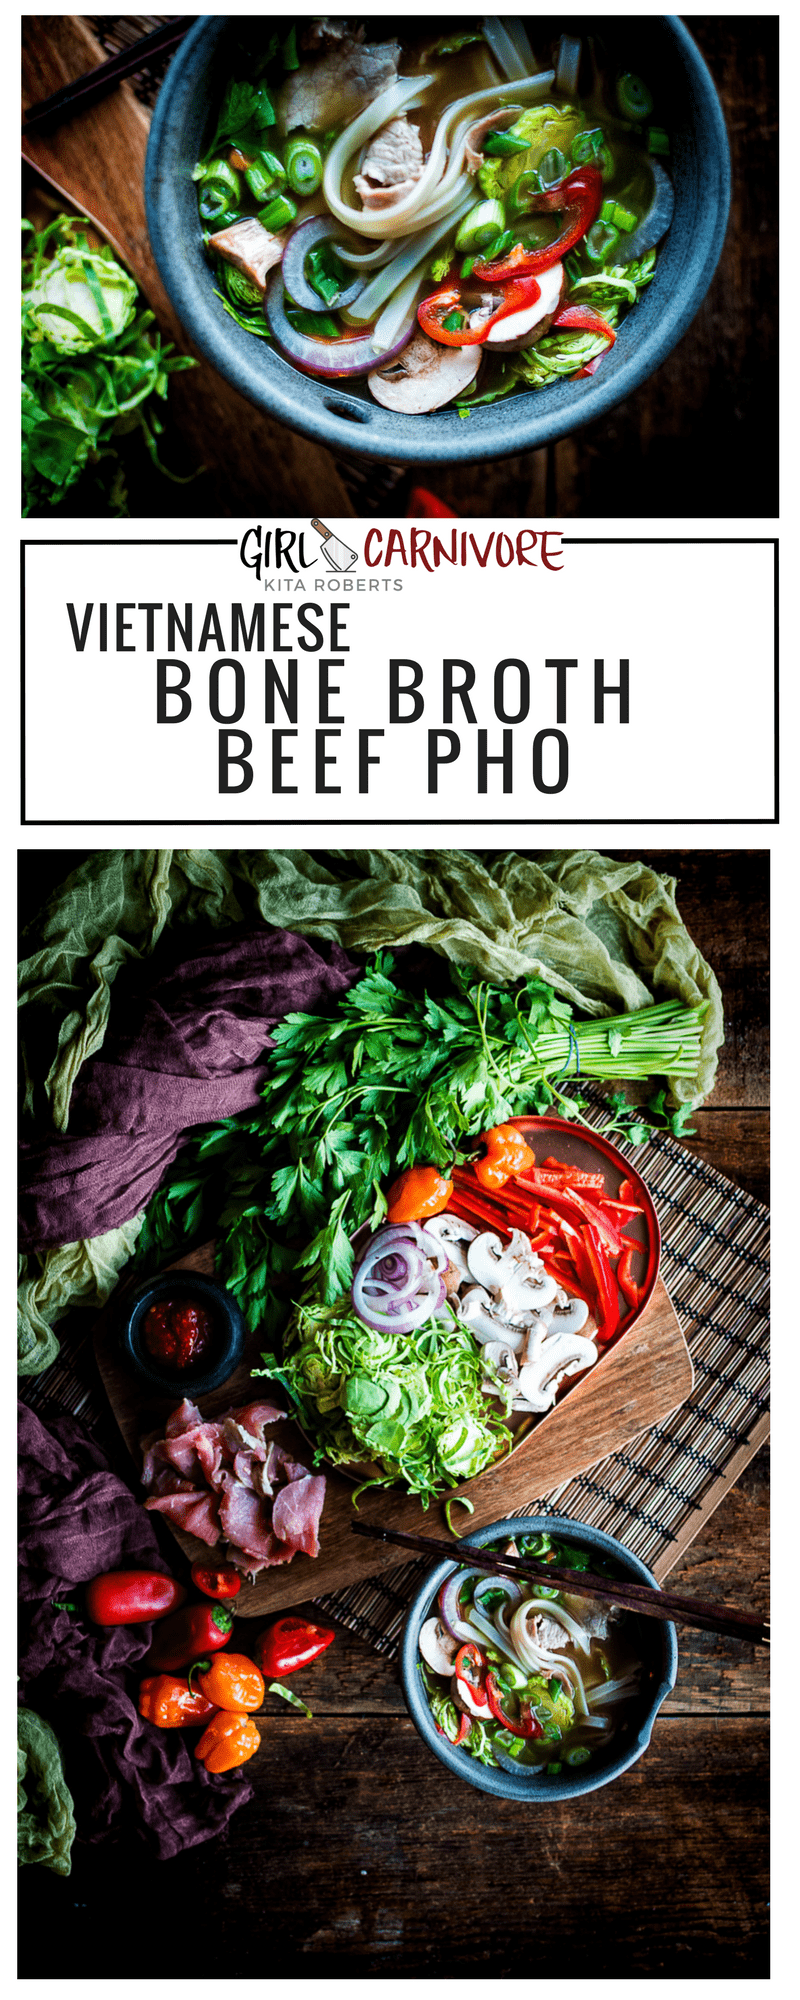 Vietnamese Bone Broth Beef Pho